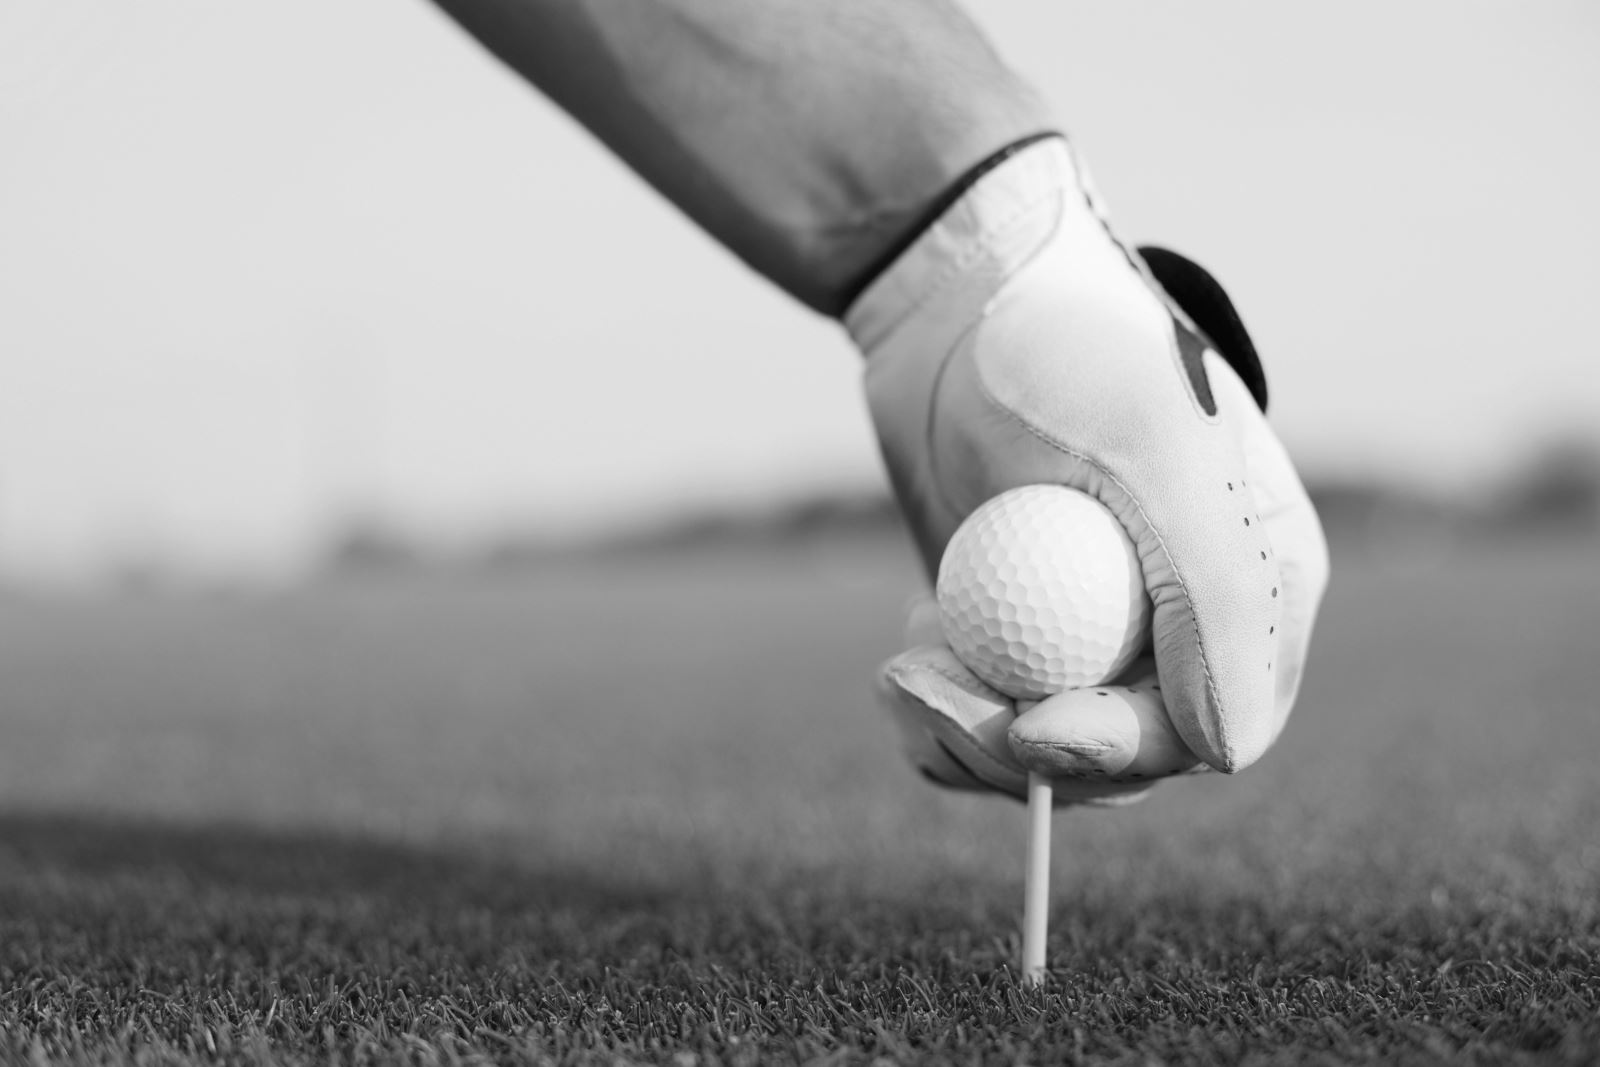 Black and white image of a man putting a golf ball and tee in the ground